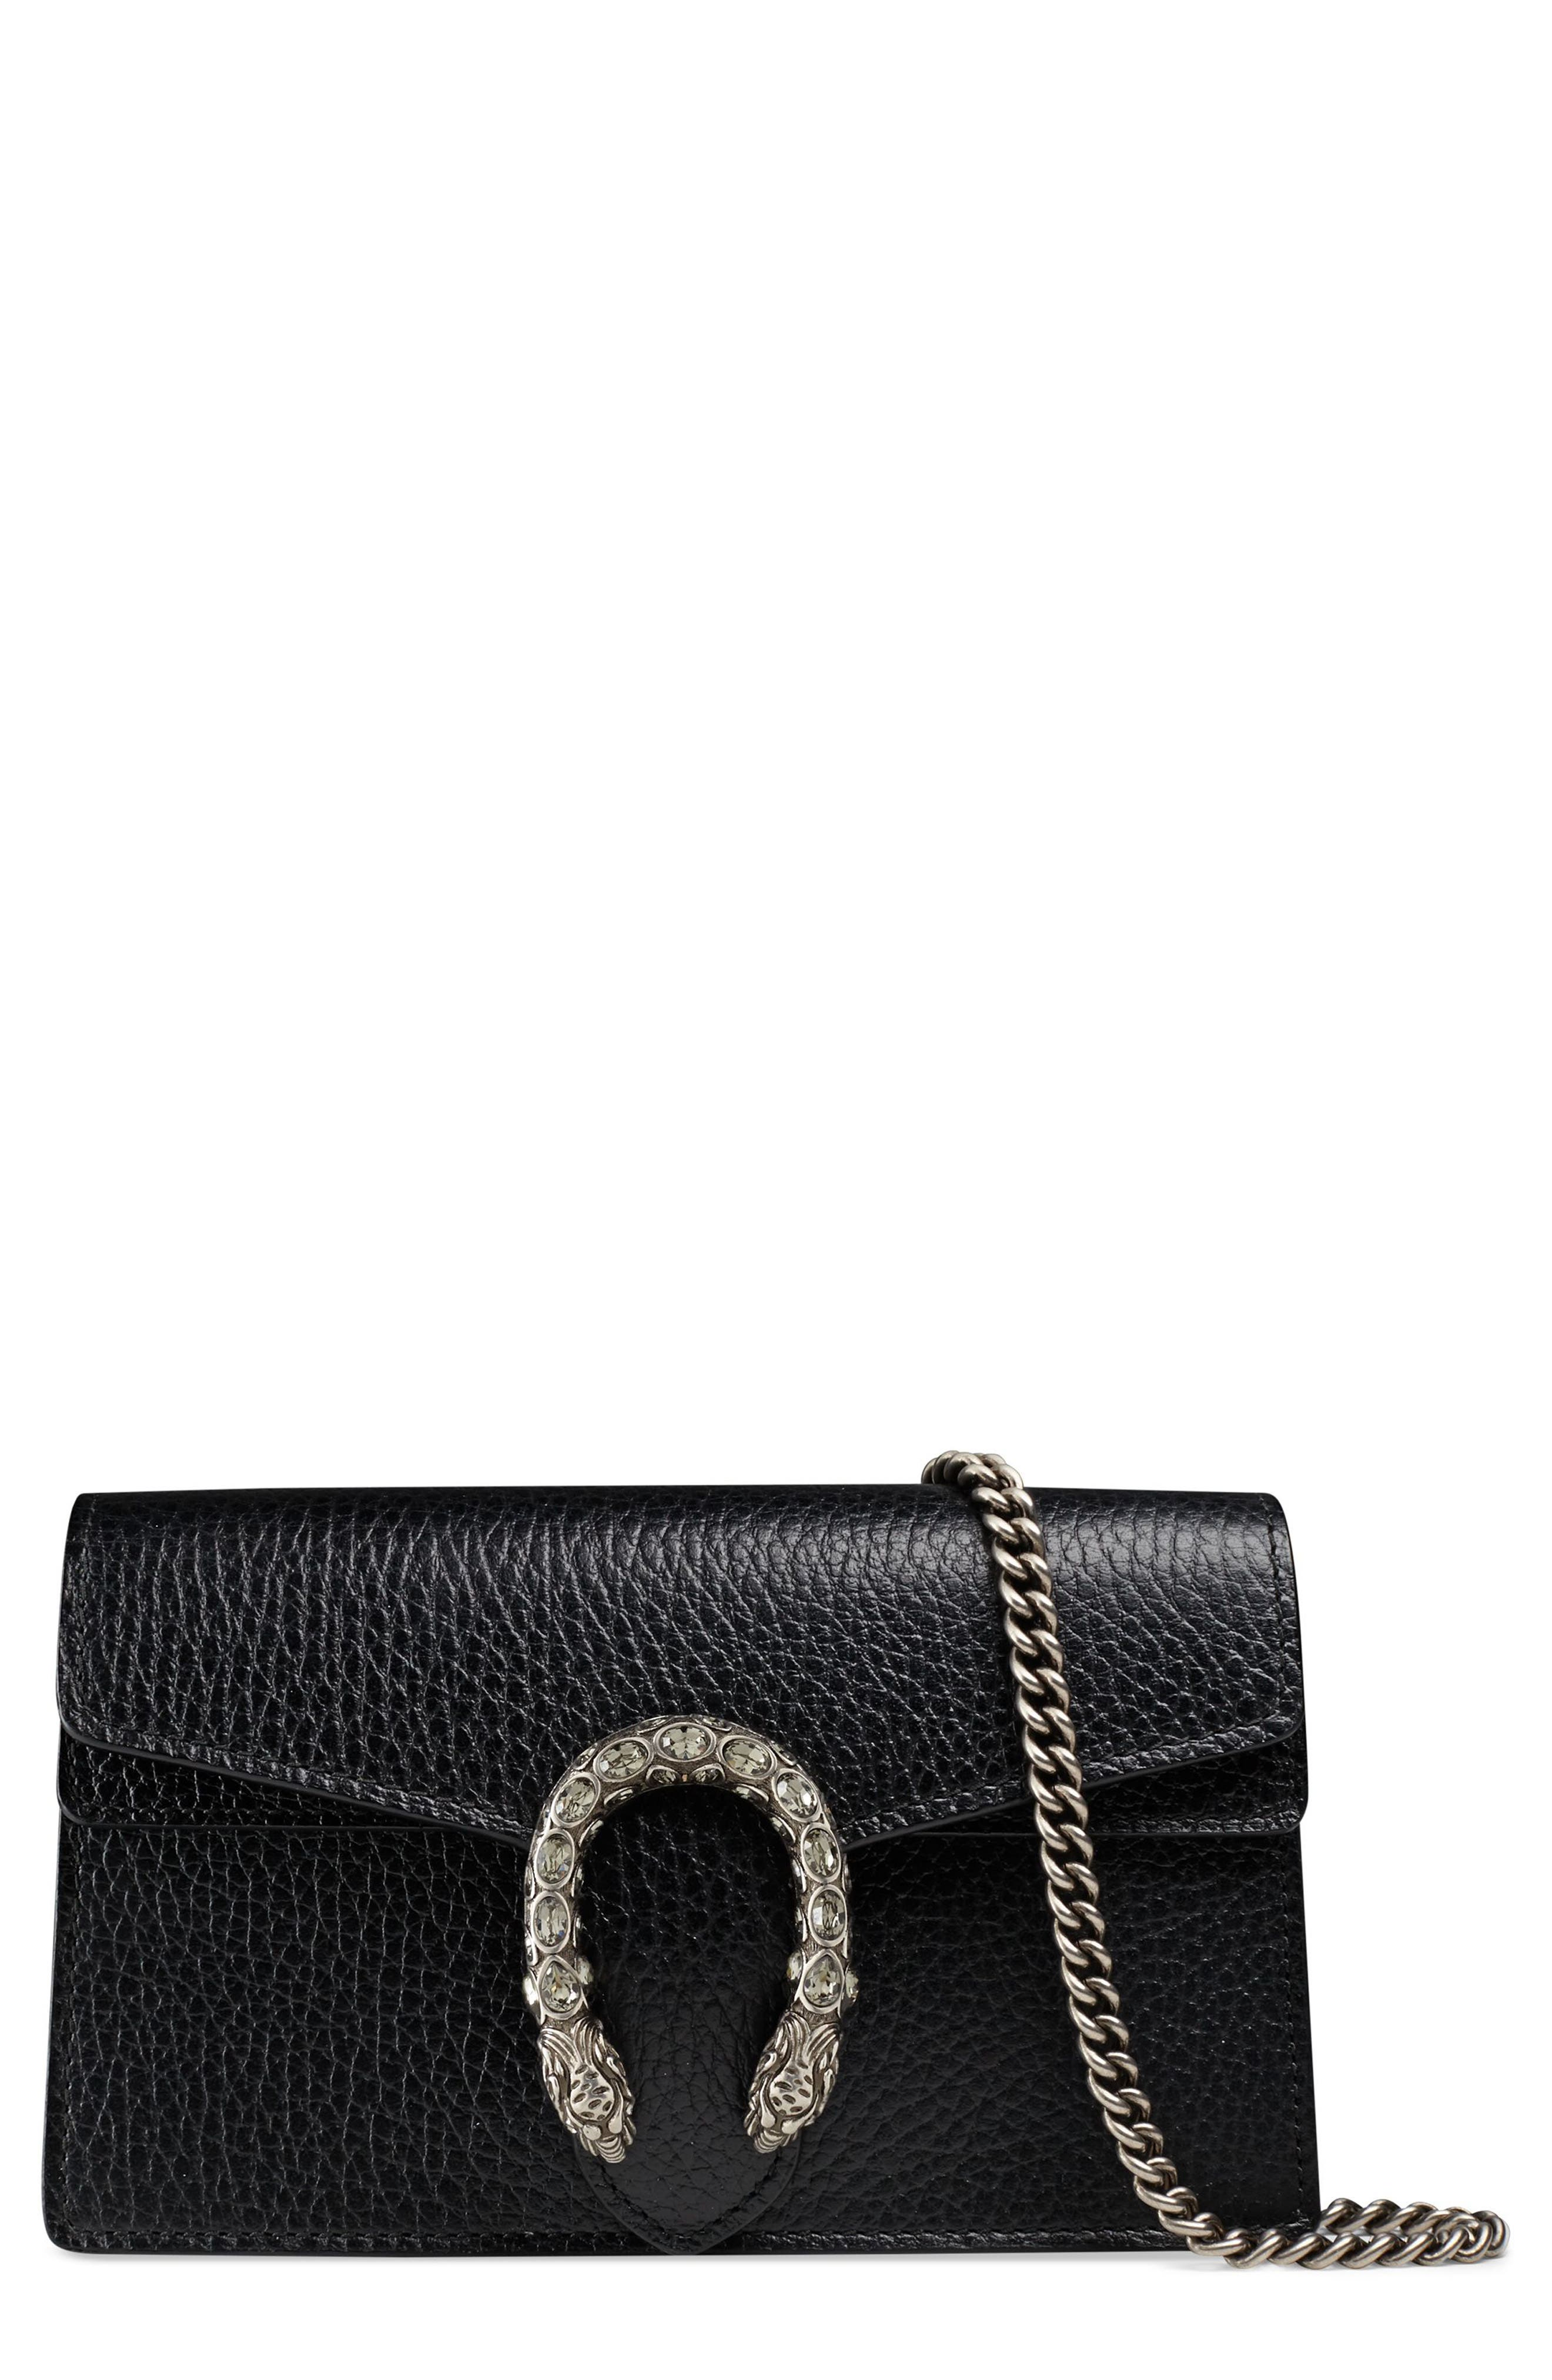 Gucci Super Mini Dionysus Leather Shoulder Bag